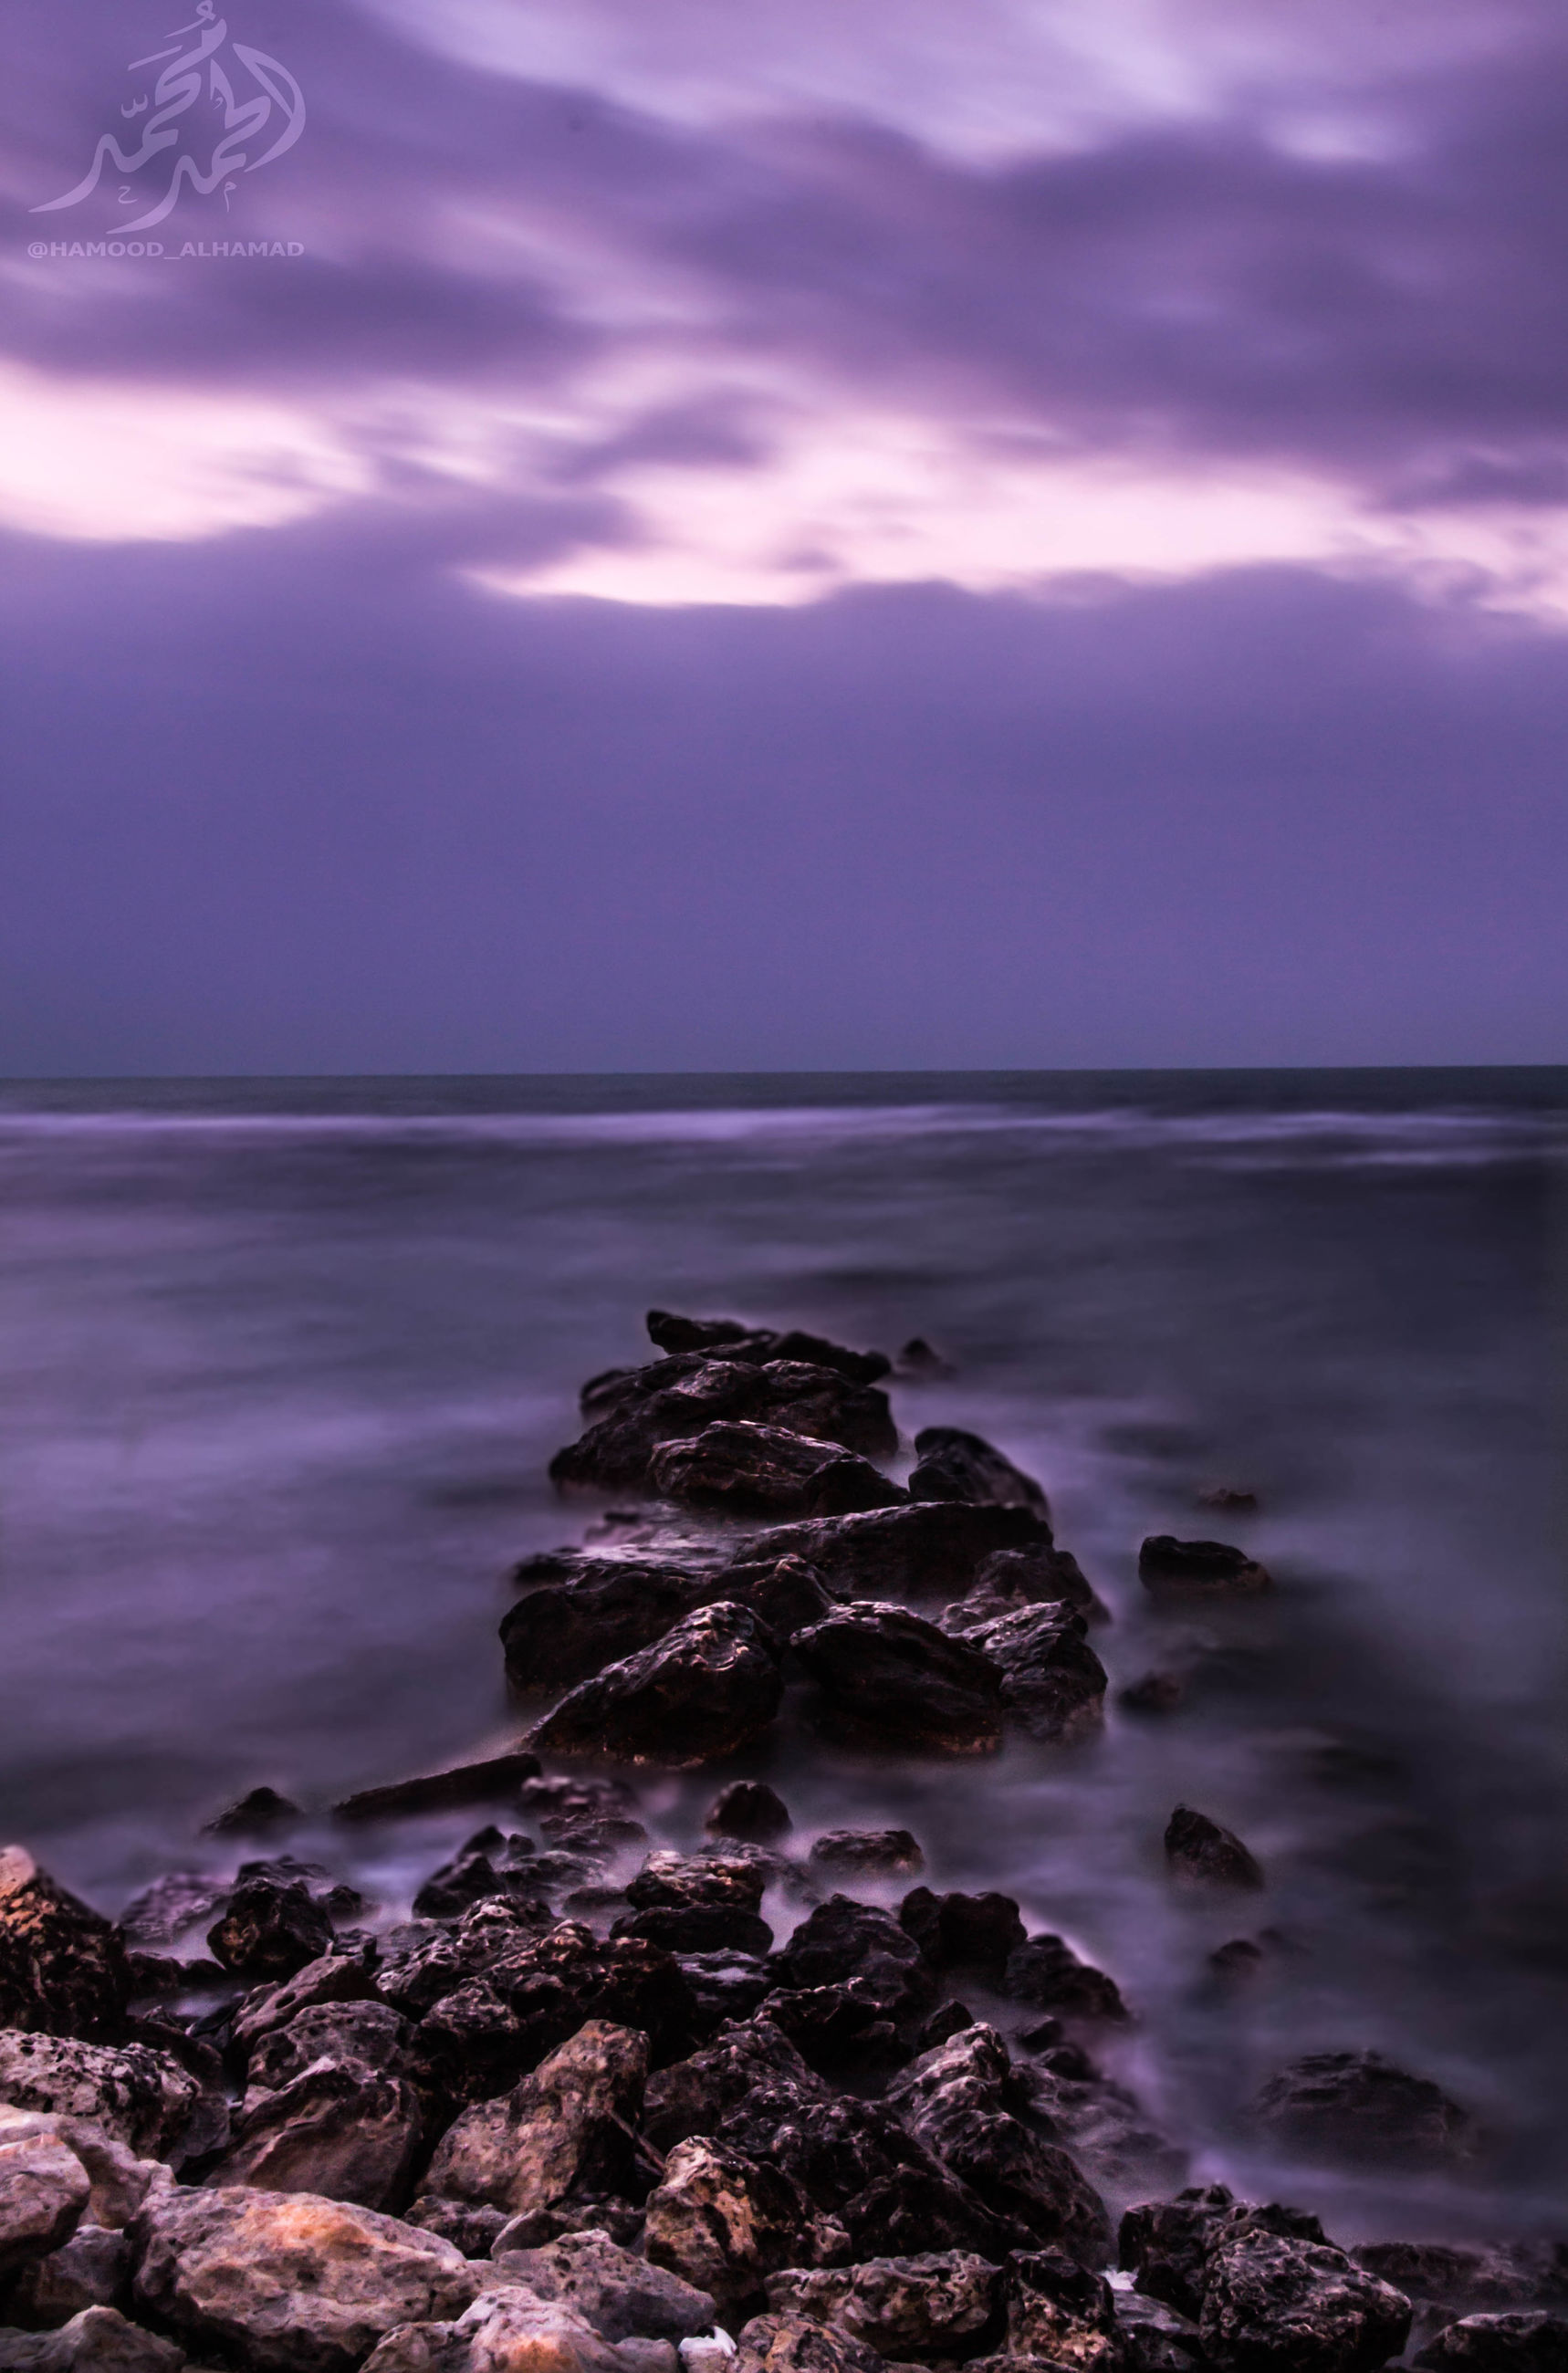 sea, water, scenics, sky, tranquil scene, beauty in nature, tranquility, horizon over water, rock - object, cloud - sky, nature, idyllic, shore, sunset, beach, cloud, cloudy, dusk, rock formation, rock